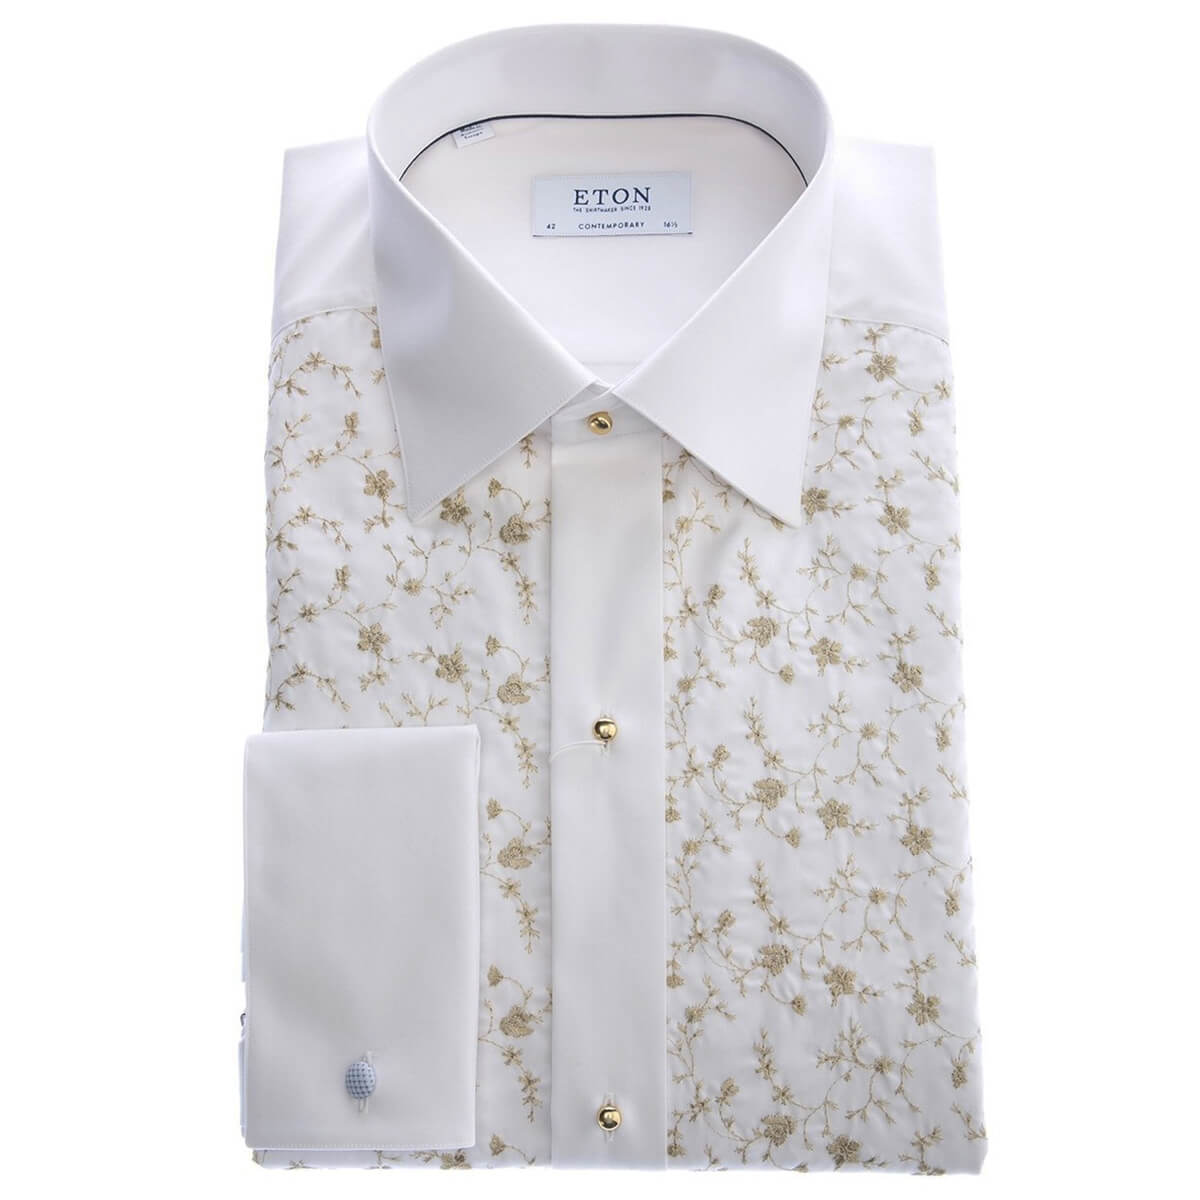 Eton Shirts White Floral Embroidery Evening Shirt